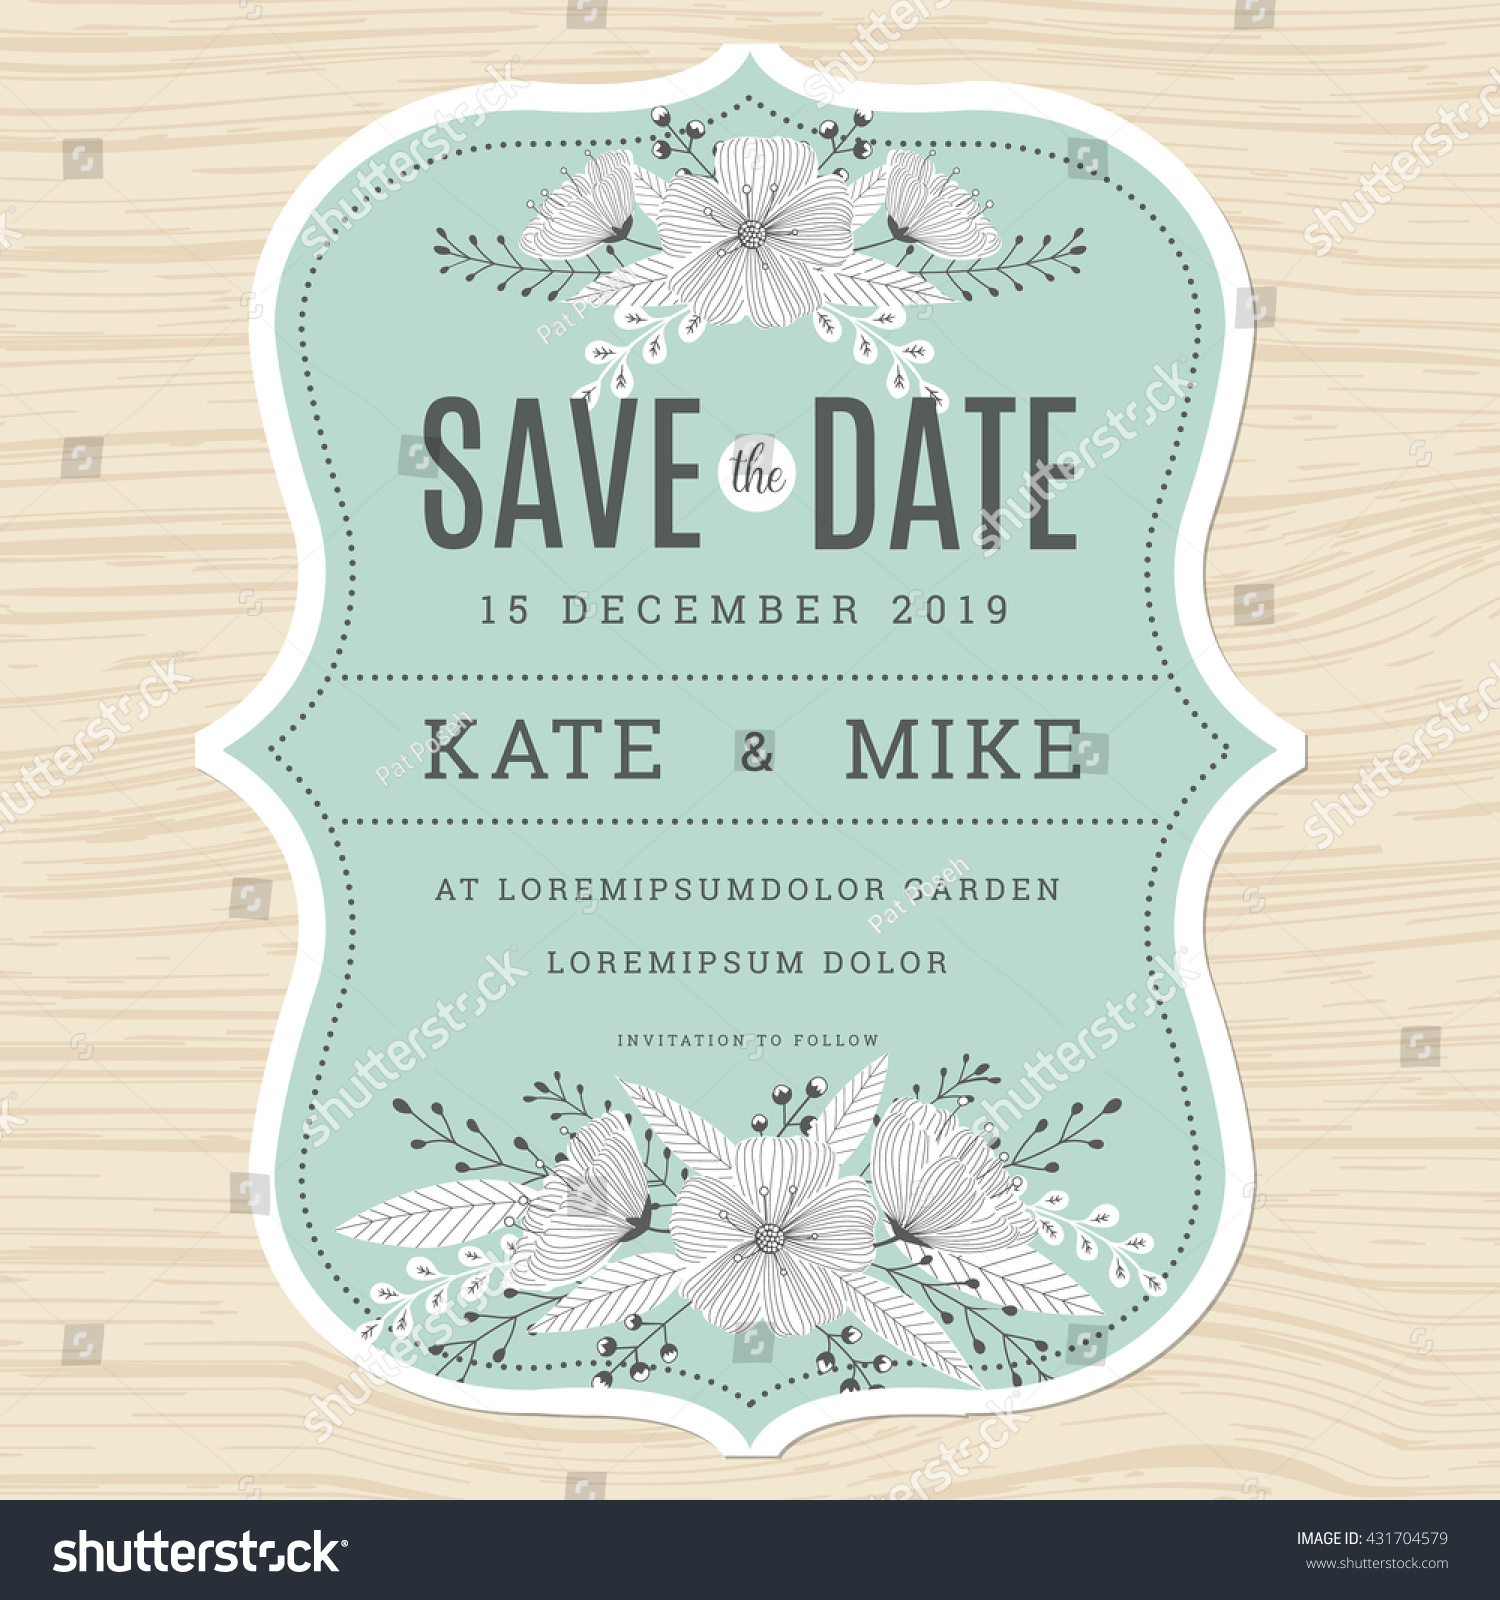 Save Date Wedding Invitation Card Template Stock Vector (Royalty ...